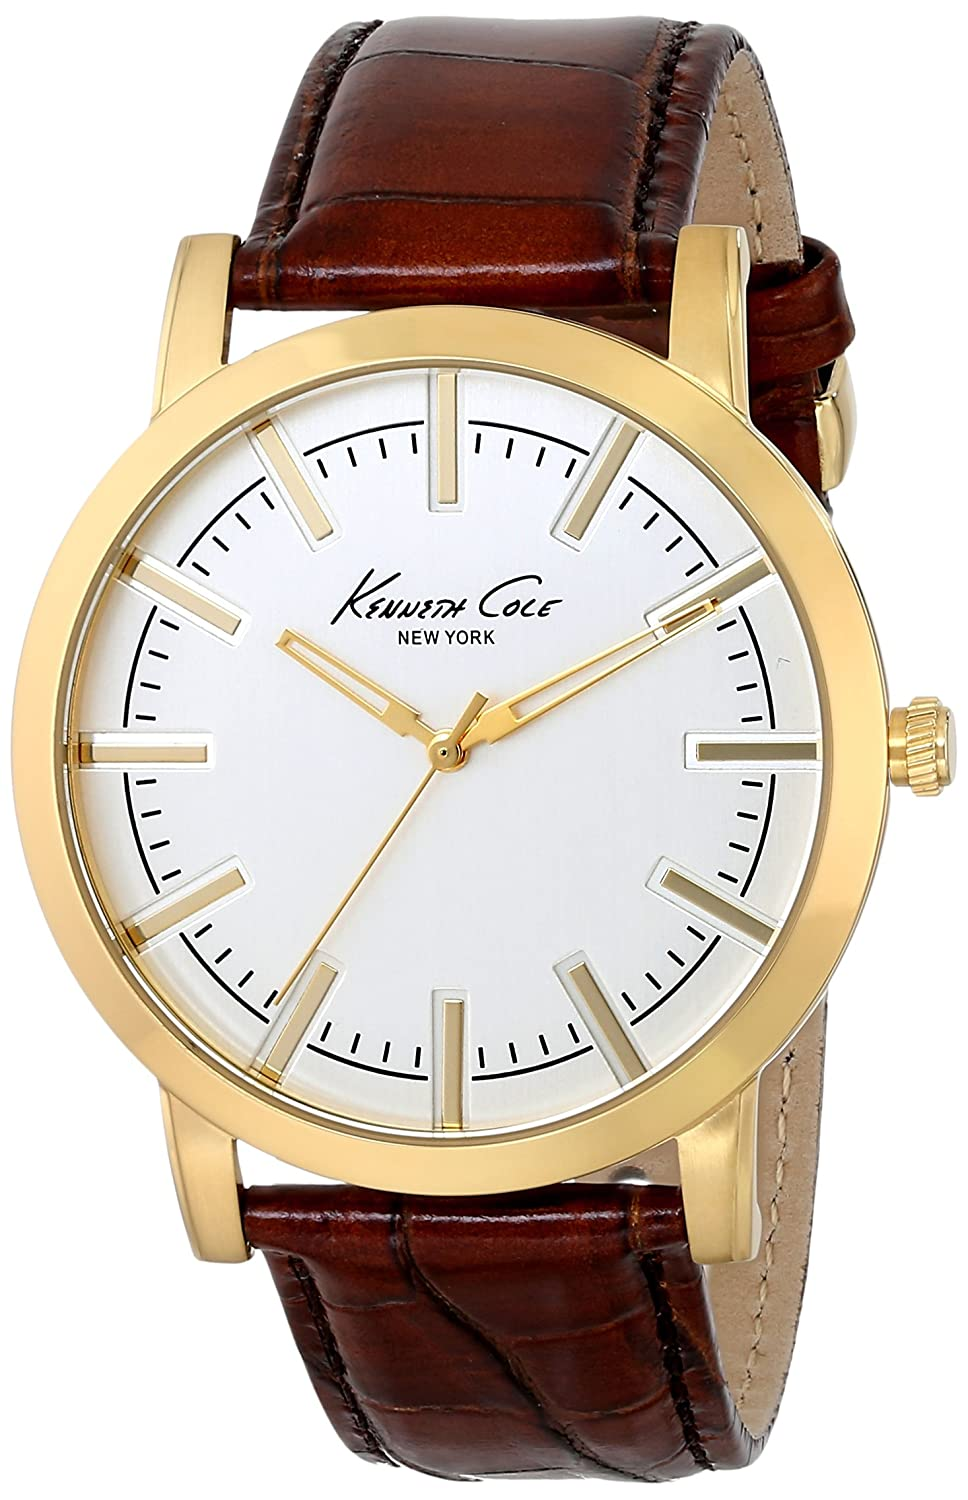 Kenneth Cole New York Men's KC8043 Gold-Tone Watch with Brown Leather Strap